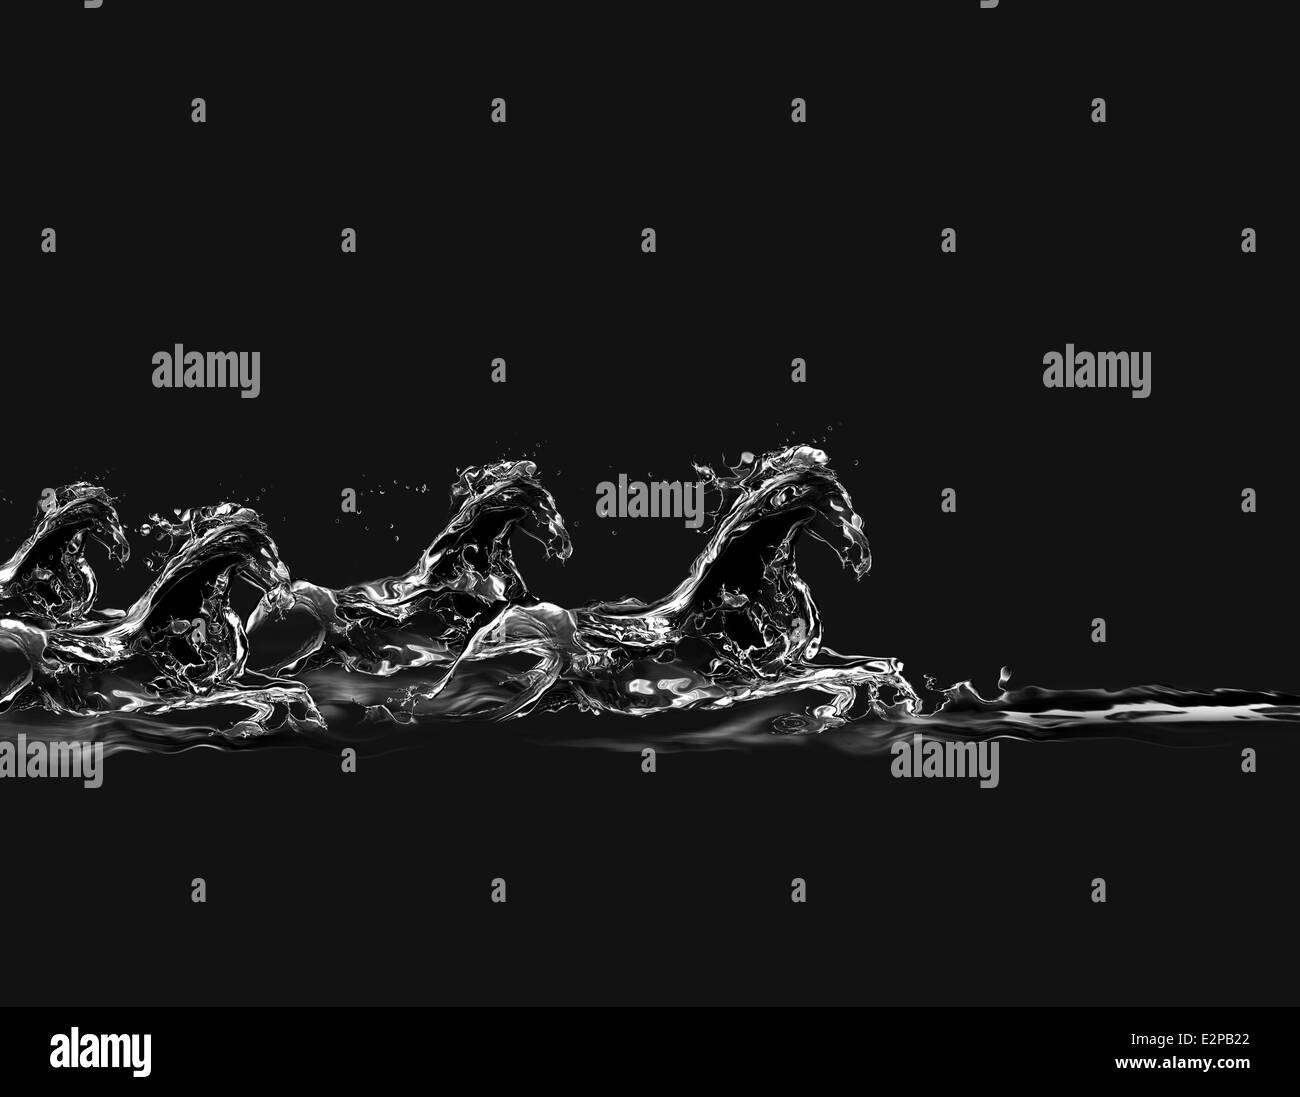 A group of horses made of water galloping in water on a black background. - Stock Image